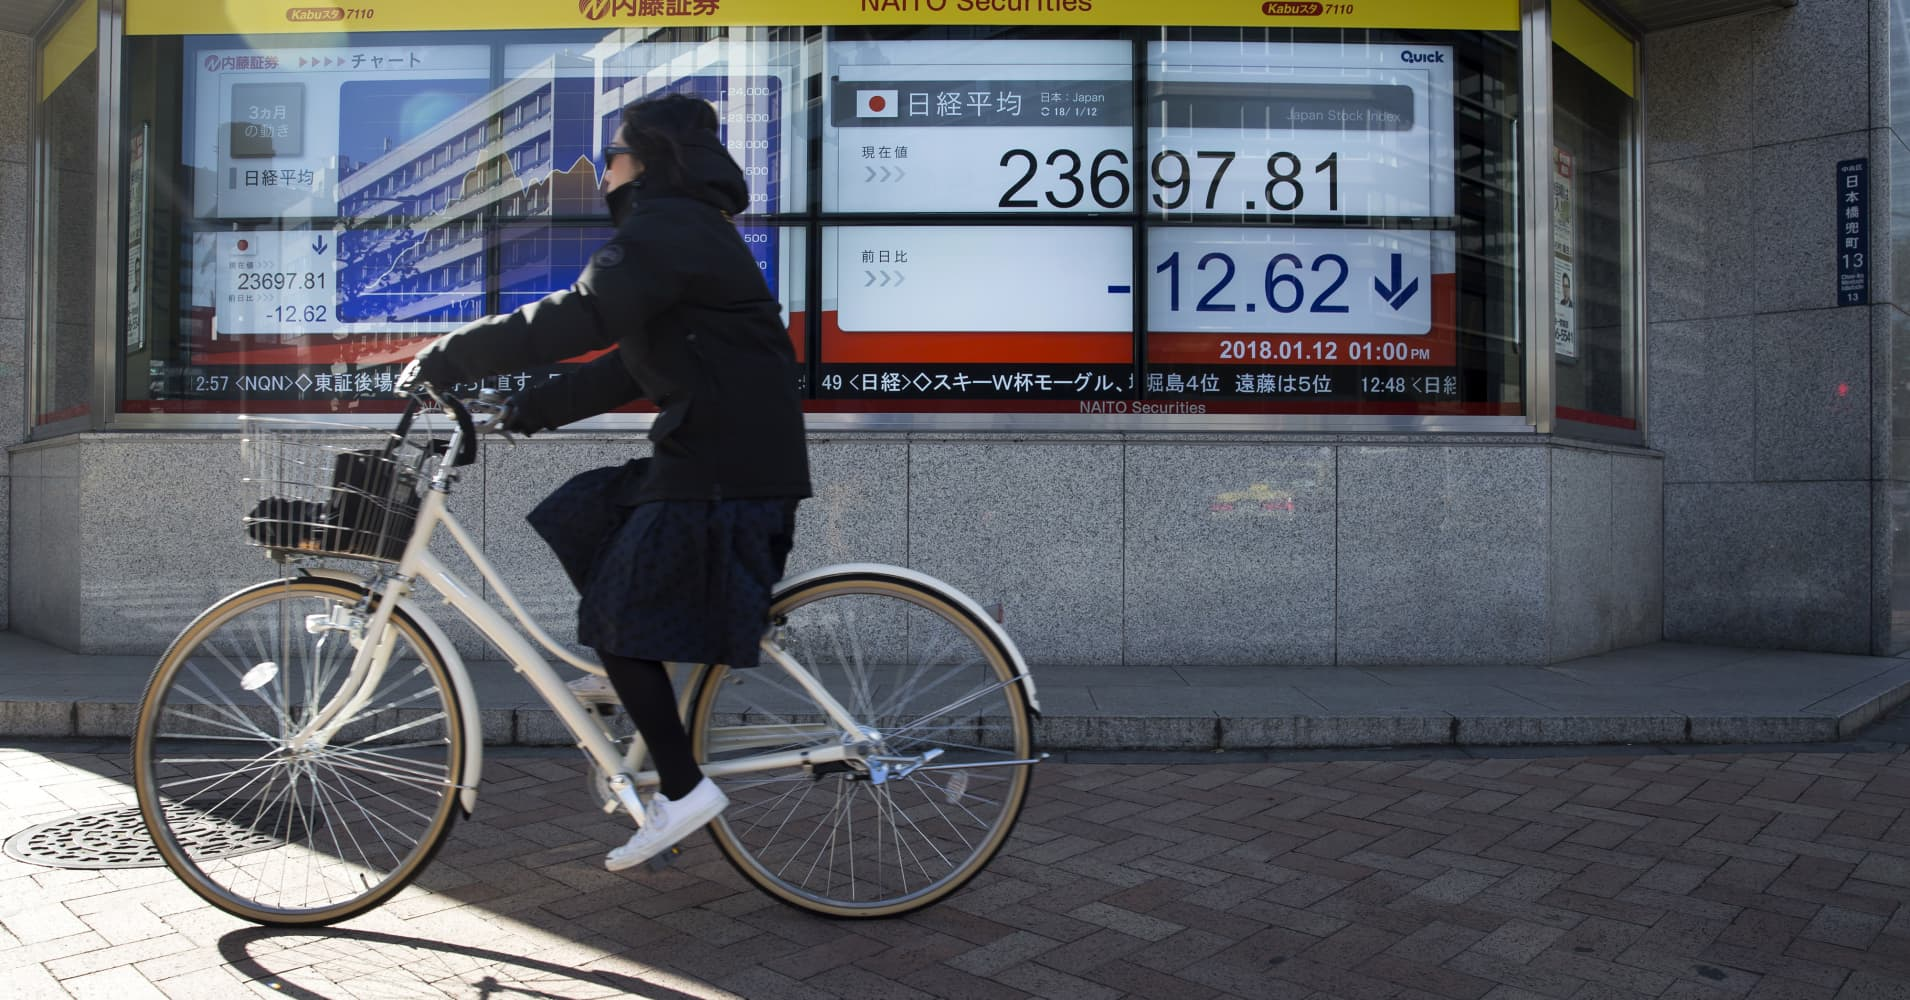 Asian shares trade mixed; Nikkei inches higher after Bank of Japan decision